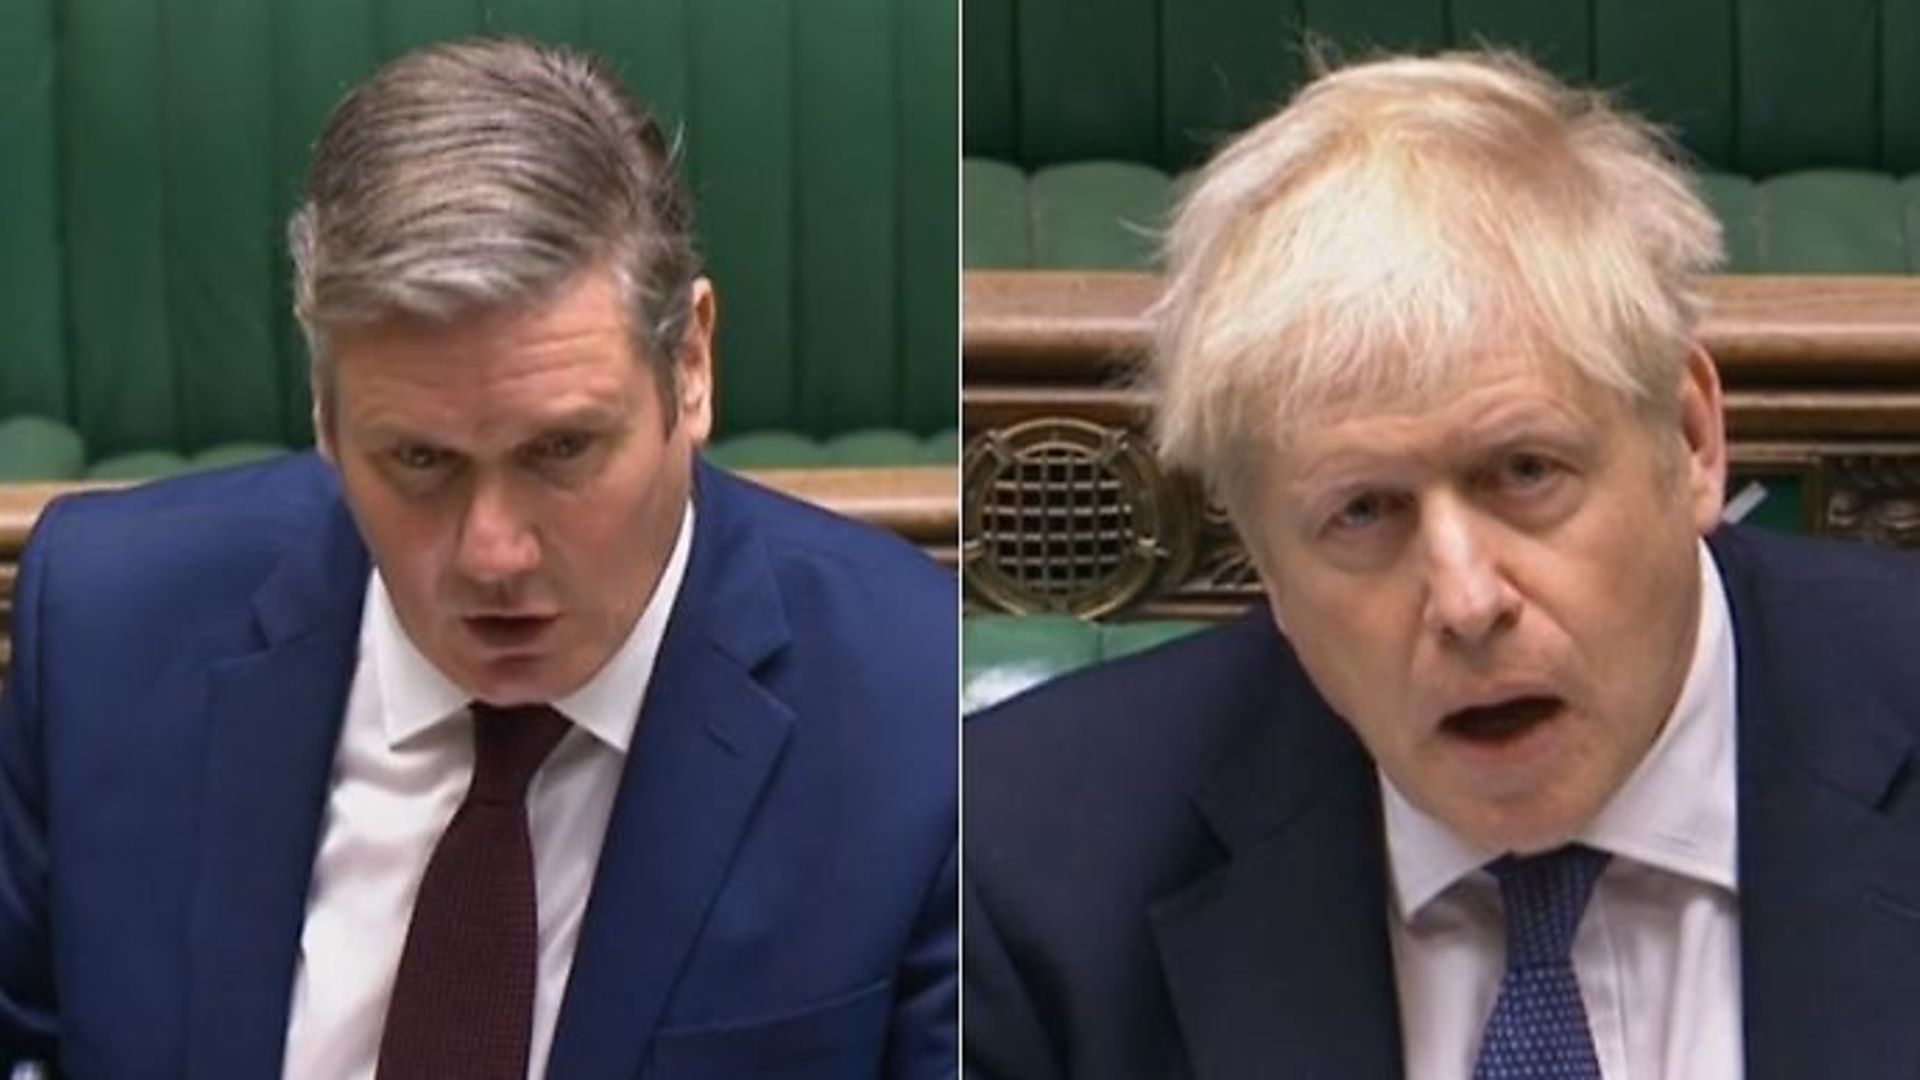 Sir Keir Starmer (L) and prime minister Boris Johnson during Prime Minister's Questions - Credit: Parliamentlive.tv